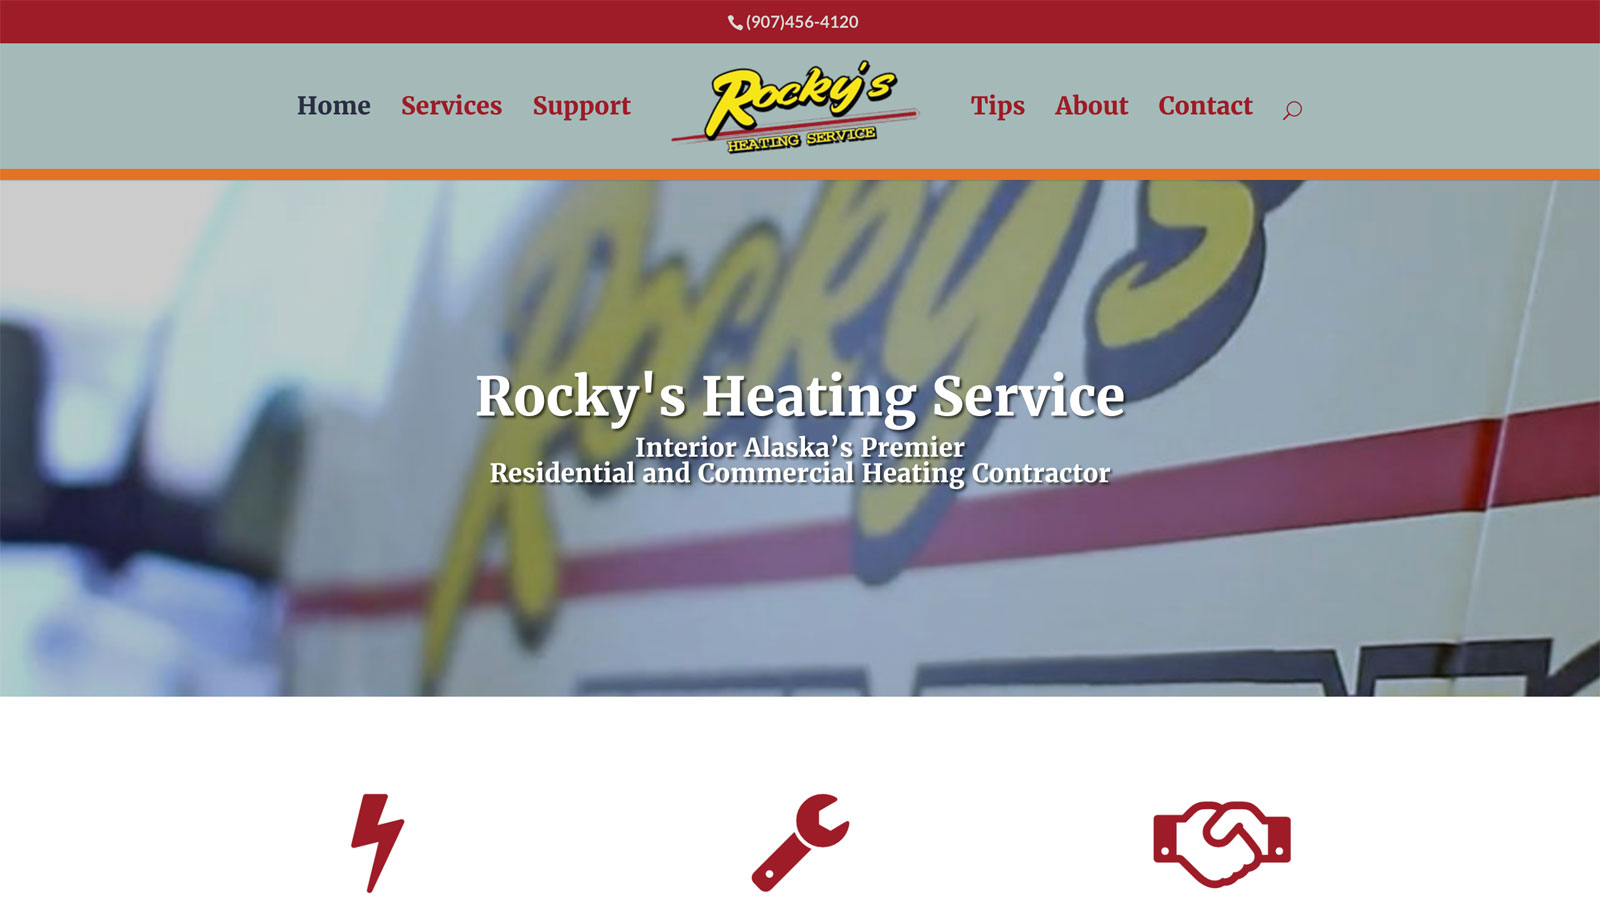 Rockys-Heating-Service